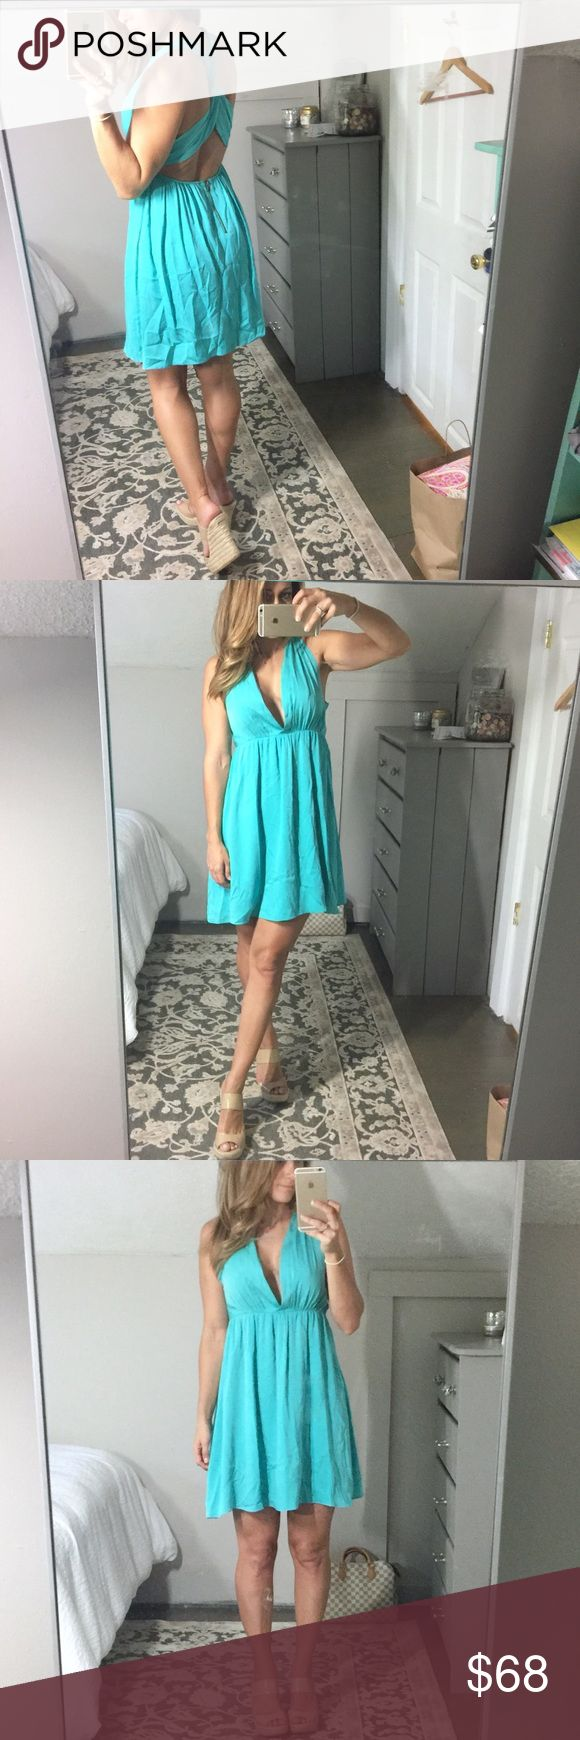 Alice + Olivia cross cross back turquoise dress S Alice + Olivia cross cross back dress - so fun and sexy - please excuse the wrinkles as I just moved.  Just needs to be steamed or pressed.  Worn about 3x - excellent condition - automatic 20% discount on bundles of 3+ items 🛍 Alice + Olivia Dresses Mini